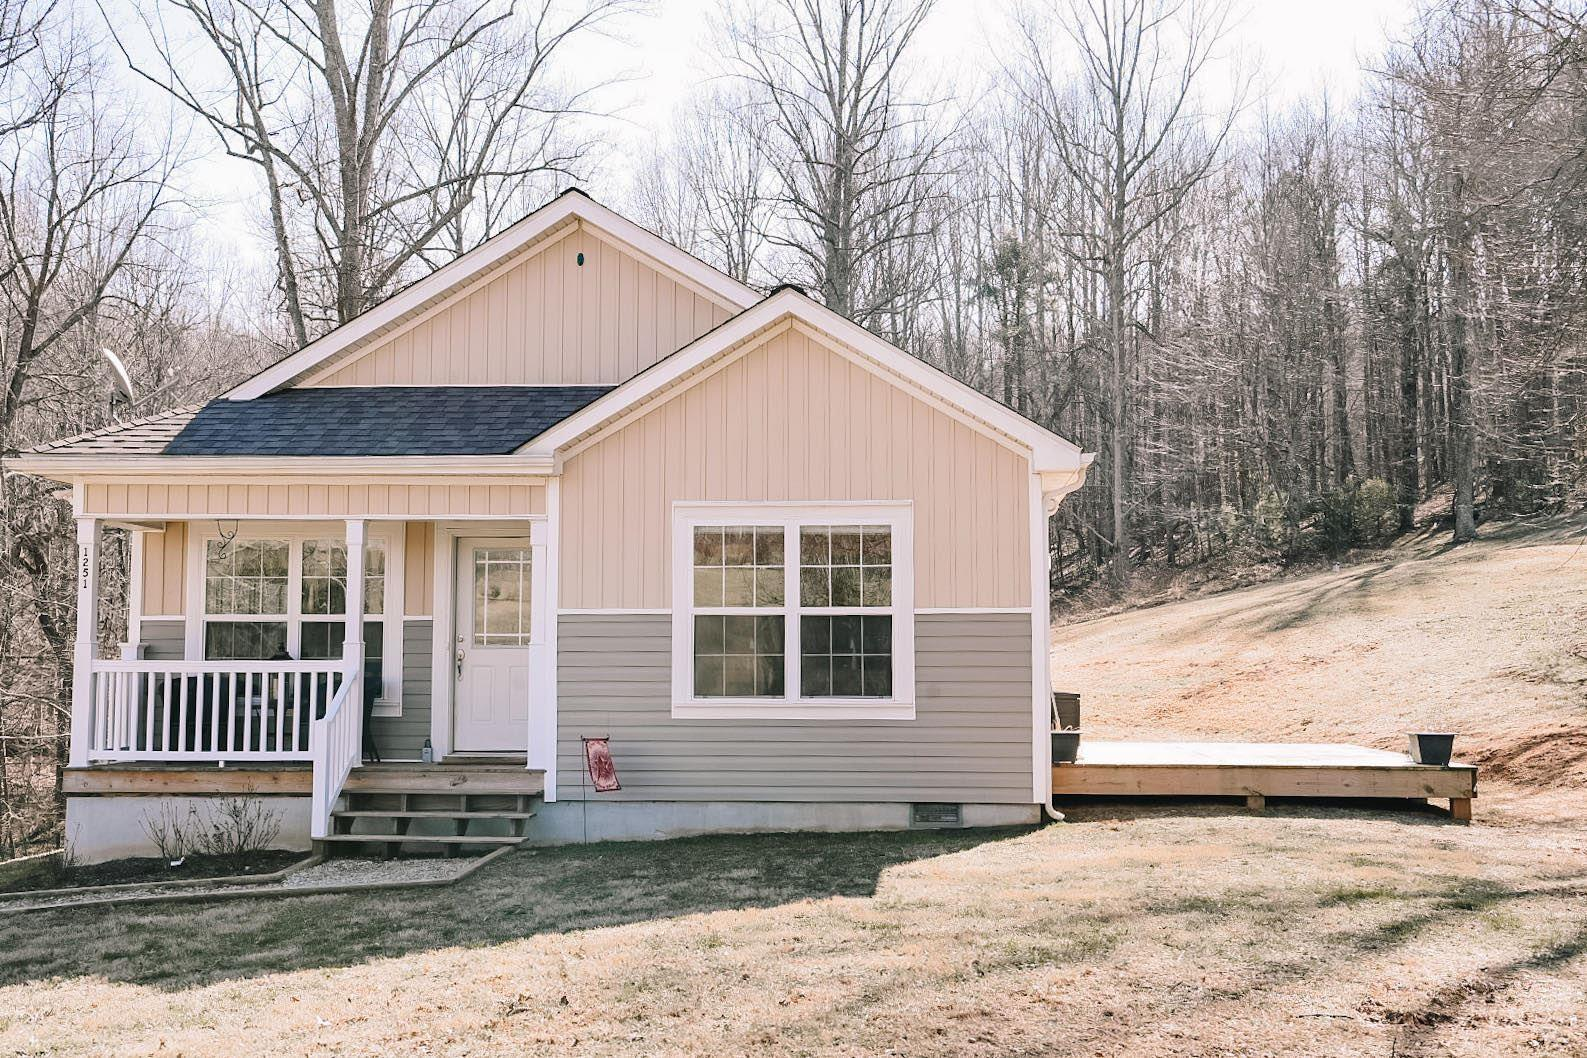 Must see like new construction on 3 acres only 5 minutes from Town of Floyd stoplight! 2 beds and 2 bath one level home with an open floor plan, beautiful wood floors, and stainless steal appliances. Perfect starter home or place to retire in the mountains.